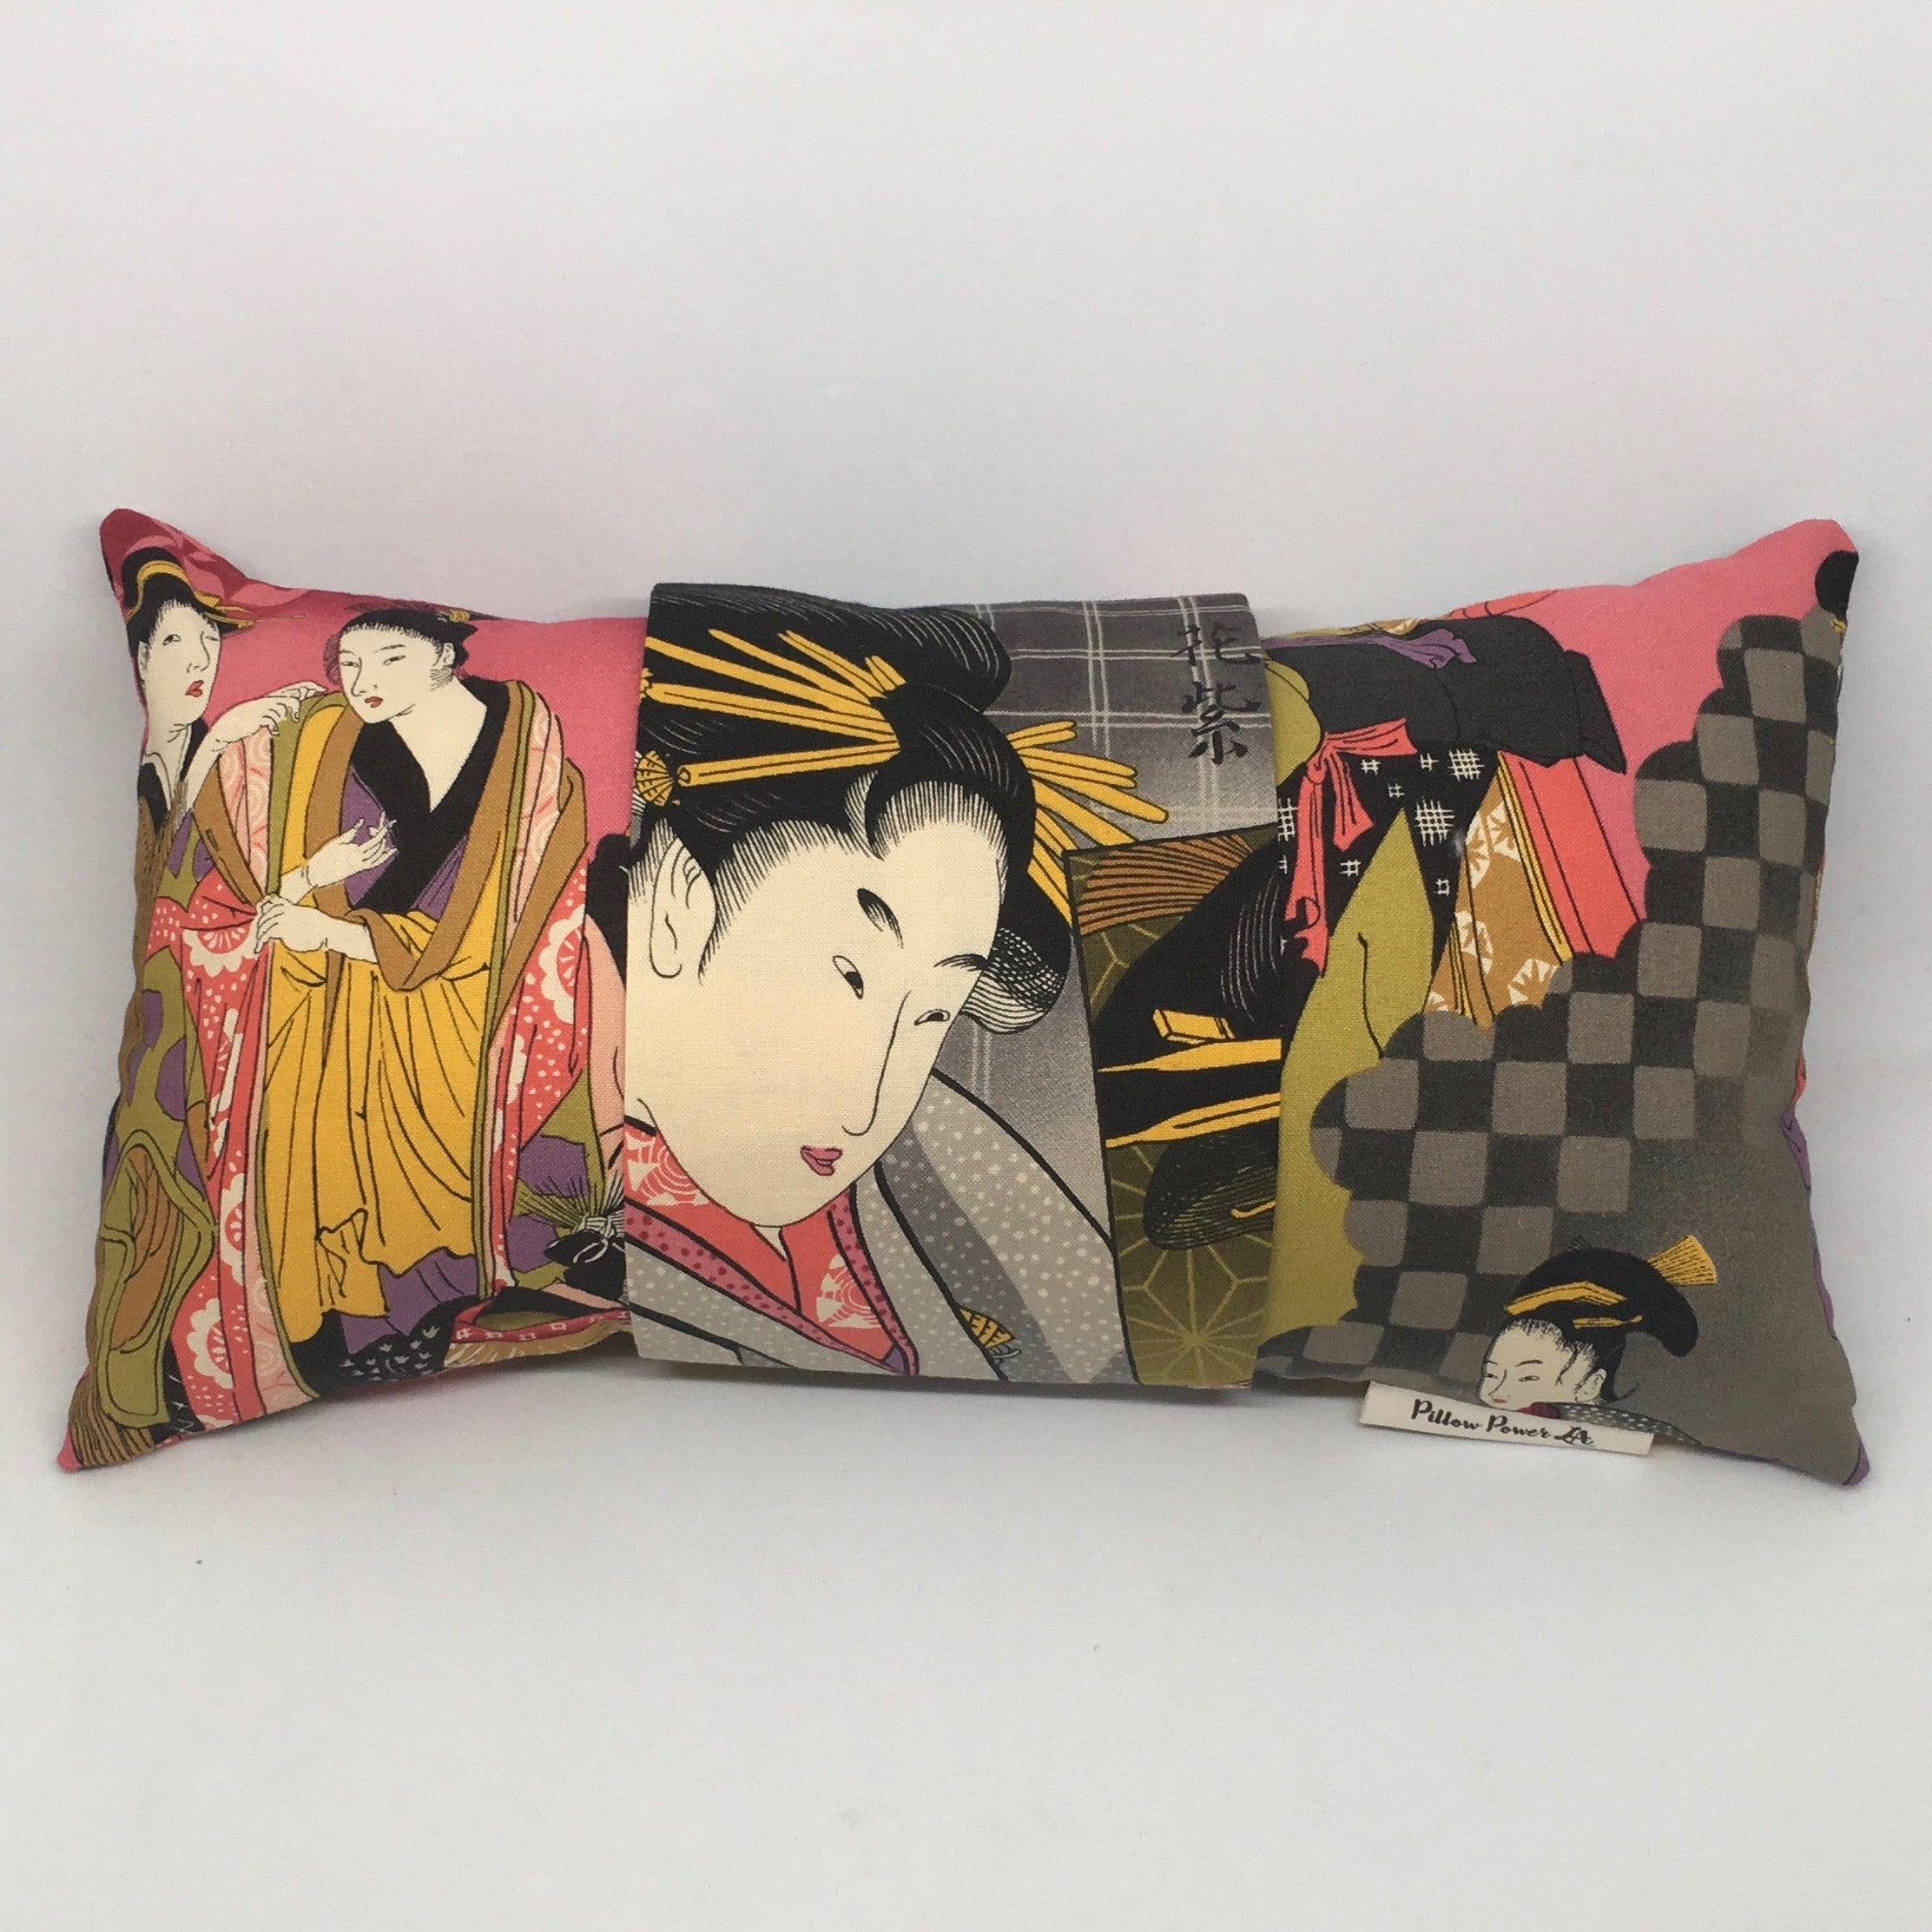 Geisha Pink and Grey -  Pillow Pocket for your Intentions